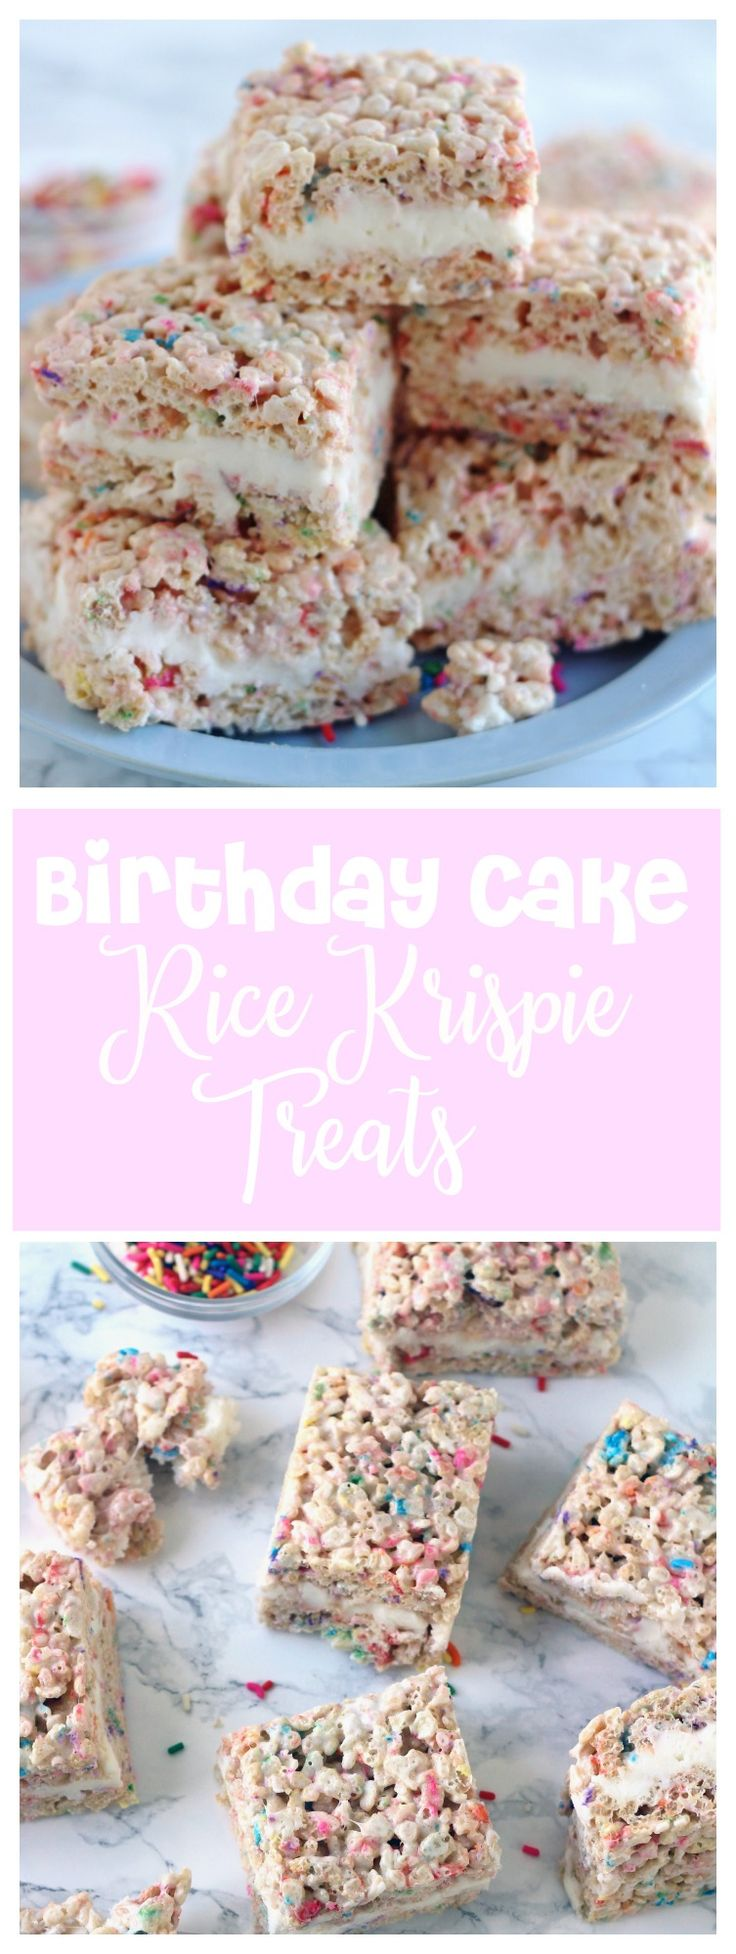 t's Rice Krispie Treats meets birthday cake and it just doesn't get any better. These Birthday Cake Rice Krispie Treats are ridiculously good. You won't be able to eat just one!